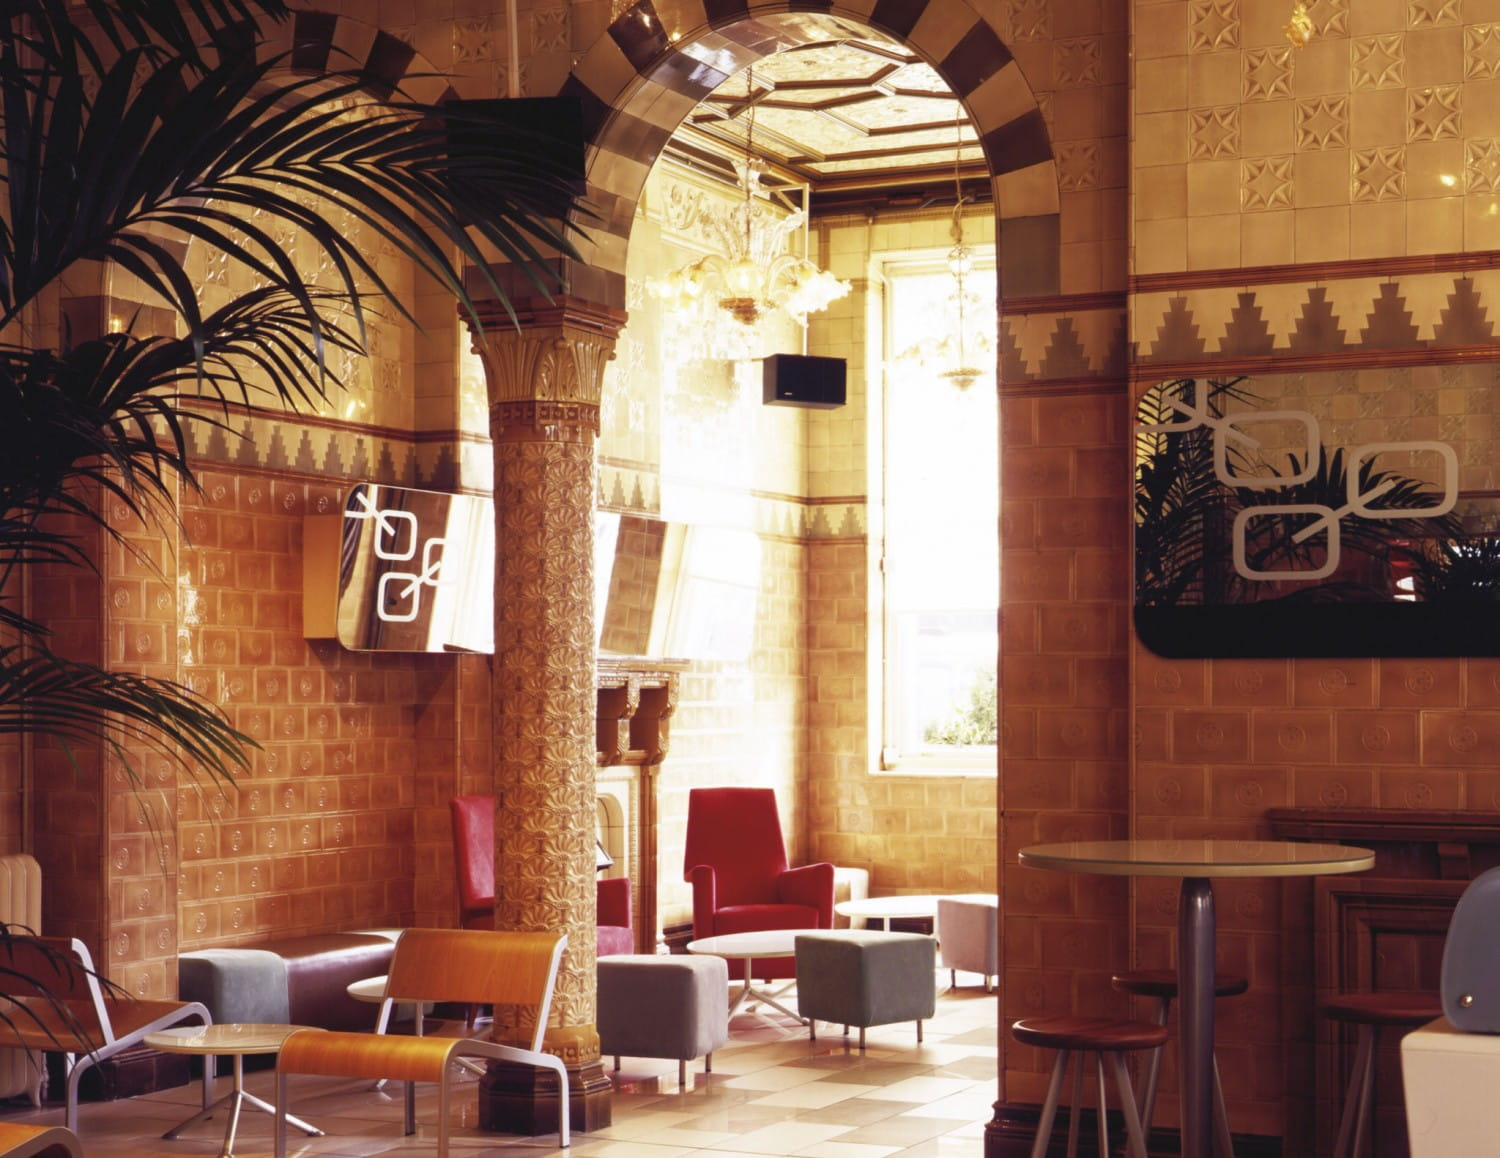 The tiled interior of the corner Gin71 bar